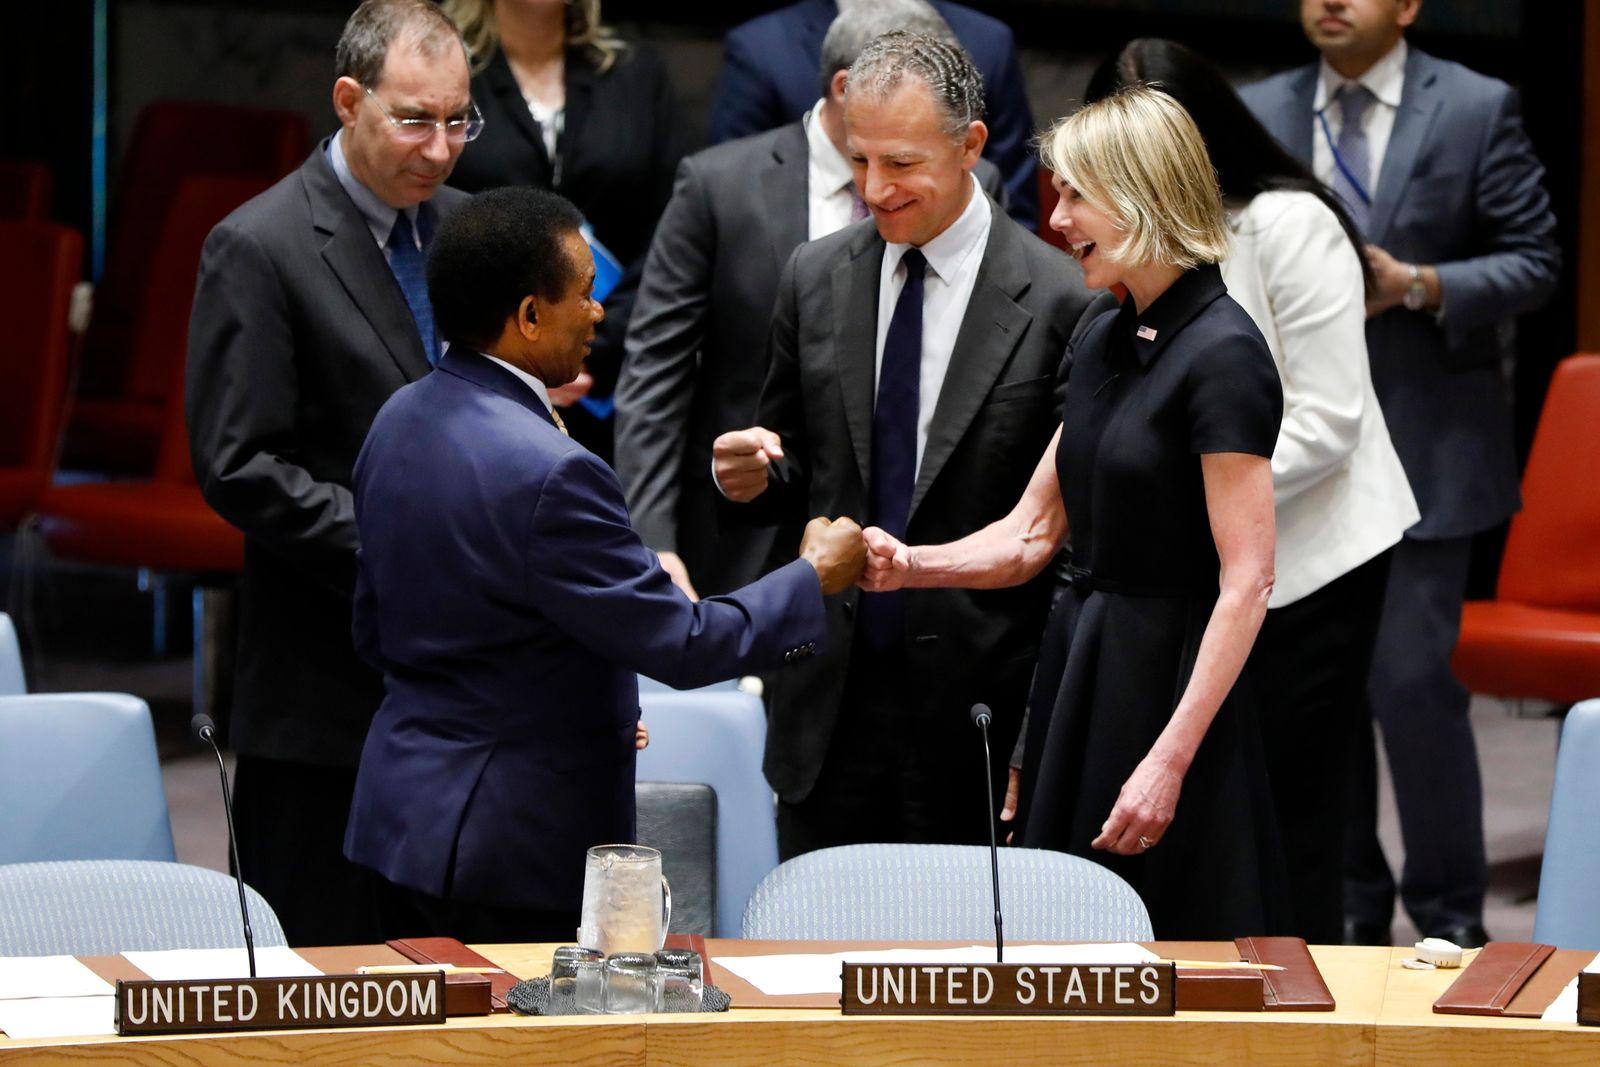 New U.S. Ambassador Kelly Craft receives a fist bump greeting from South Africa's Ambassador Jerry Matjila, left, as she attends her first Security Council meeting, at United Nations headquarters, Thursday, Sept. 12, 2019. (AP Photo/Richard Drew)